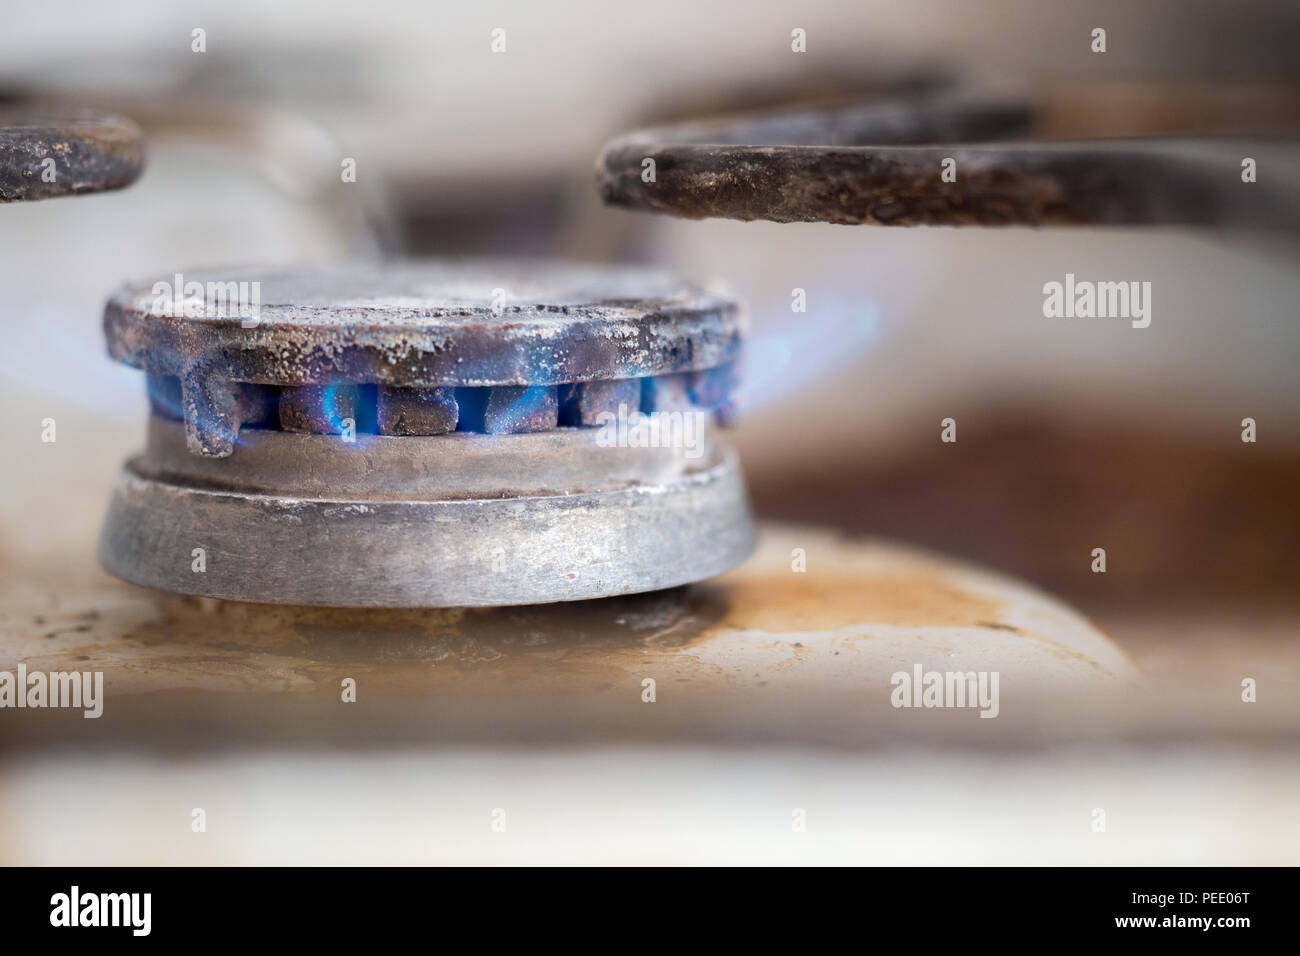 Close-up of dirty gas stove burning fire - Stock Image